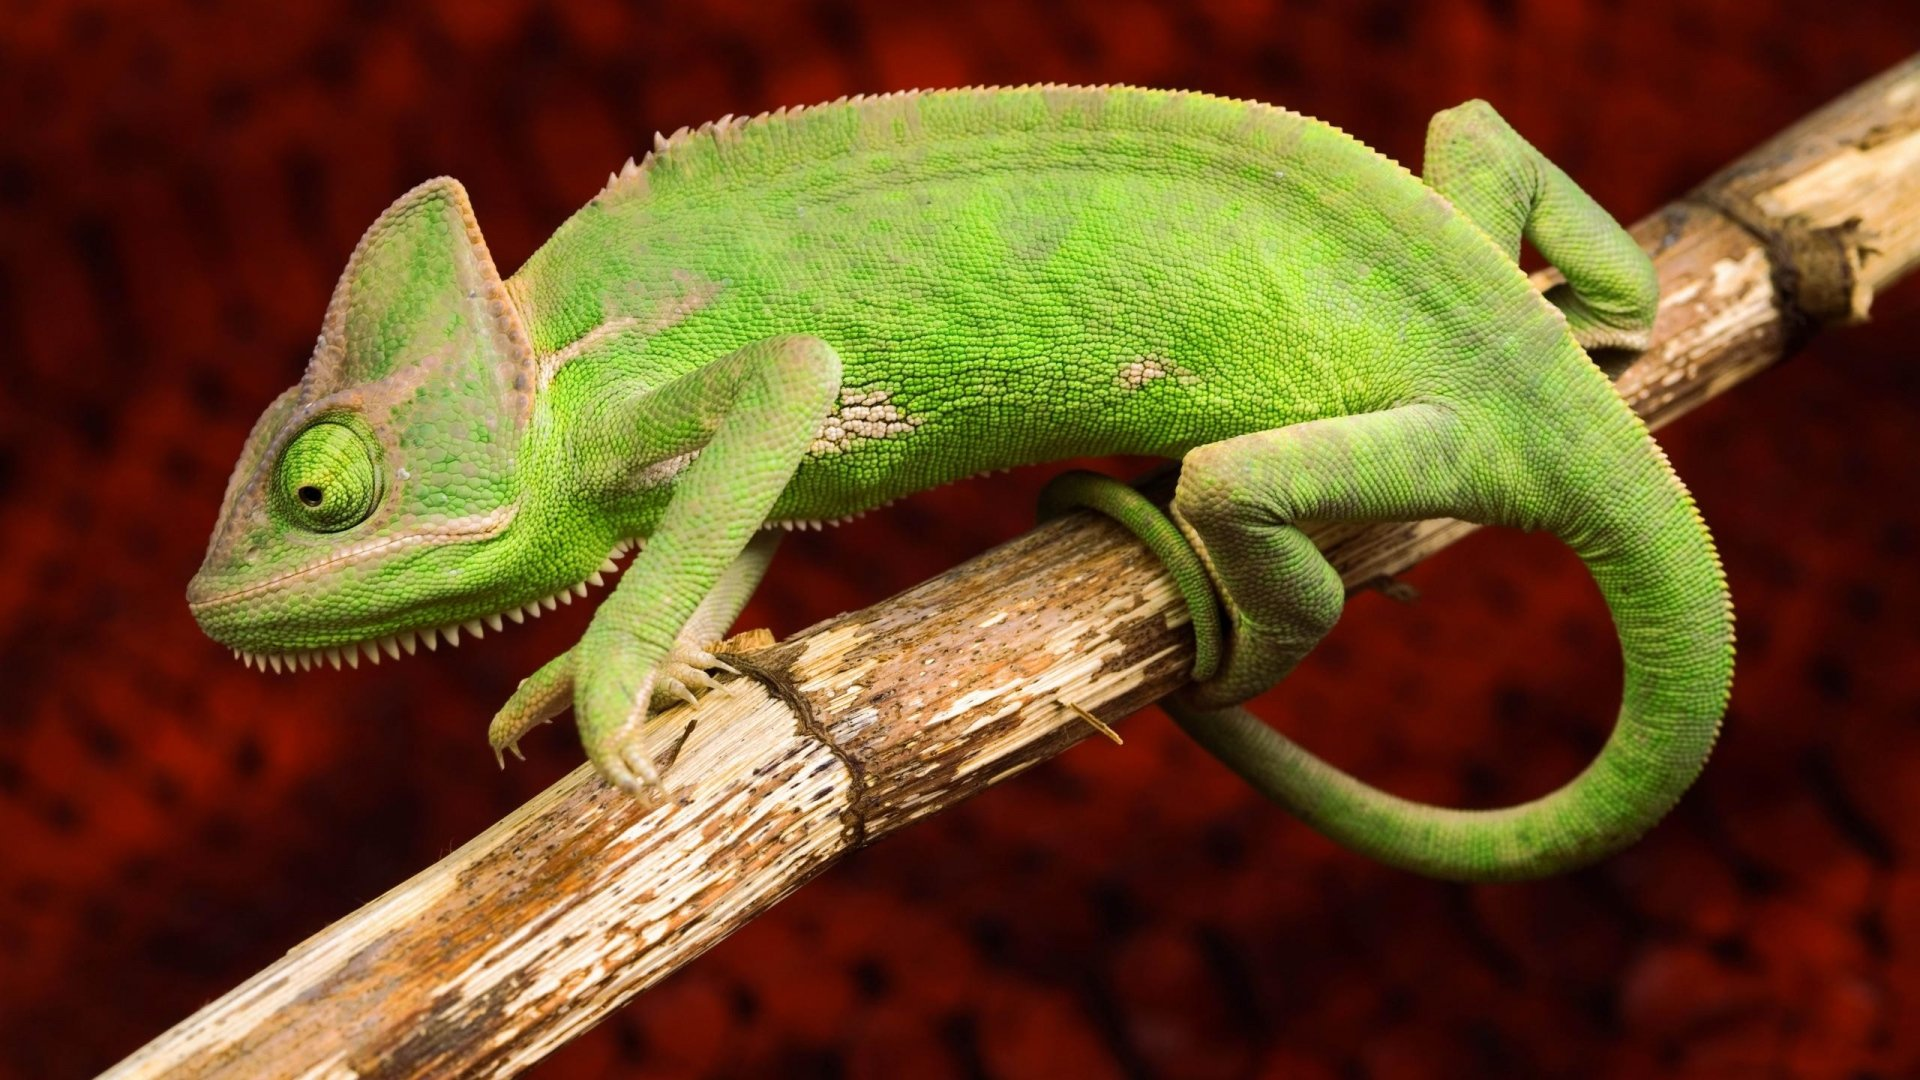 Free Chameleon high quality wallpaper ID:462572 for full hd 1920x1080 desktop